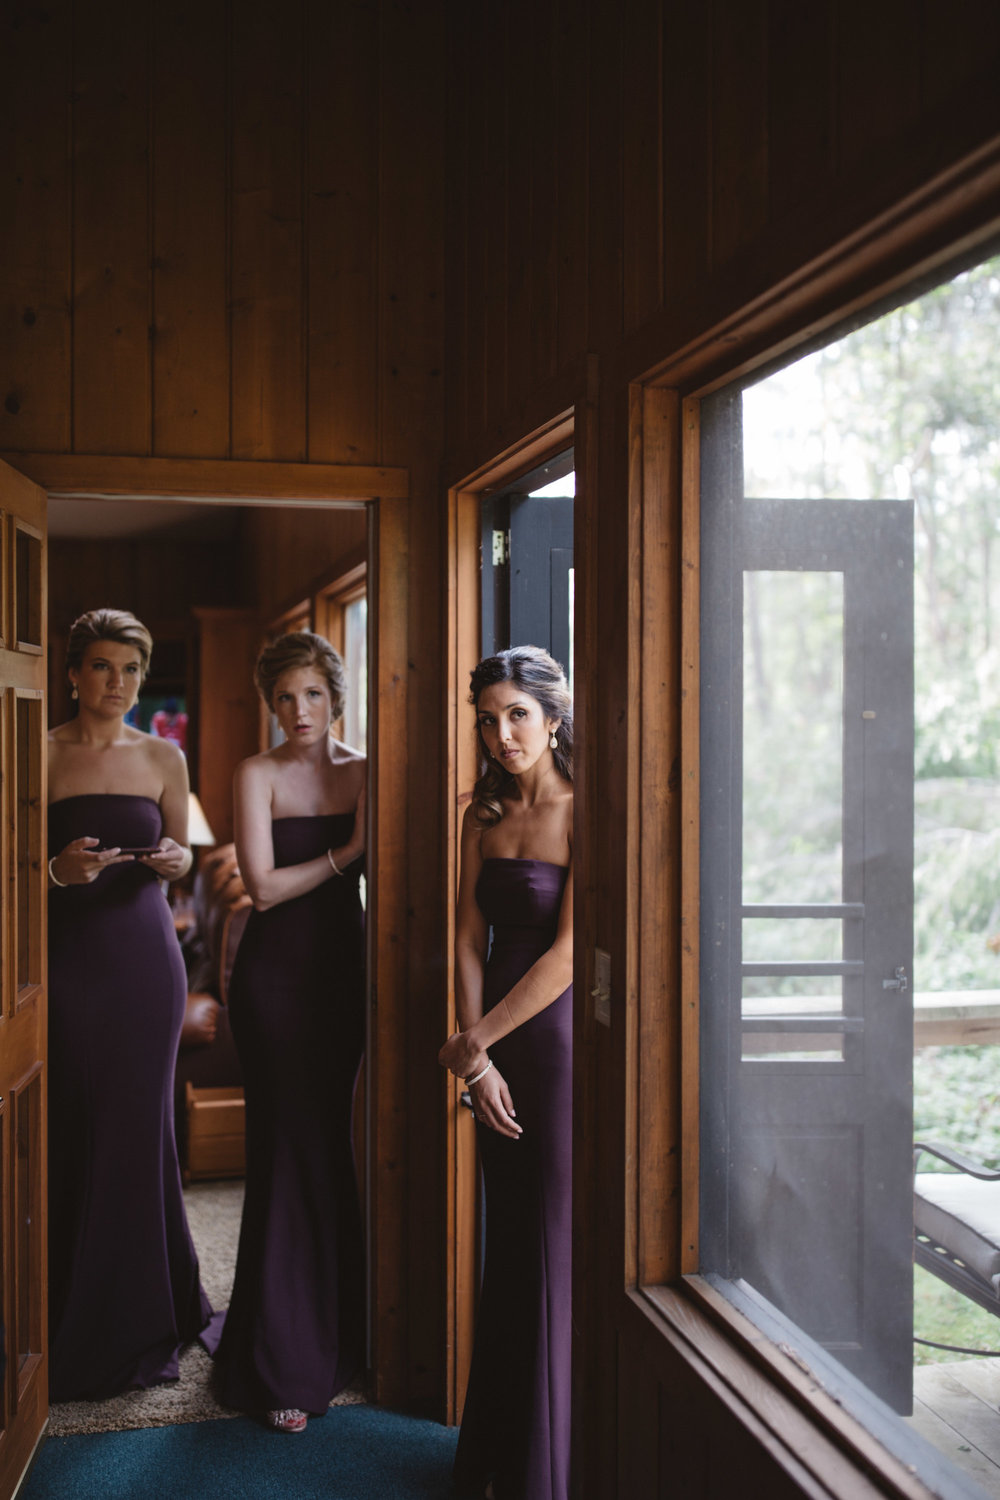 Stunning bridesmaids in purple wedding dresses. Photography by Britt DeZeeuw, Grand View Lodge wedding photographer.